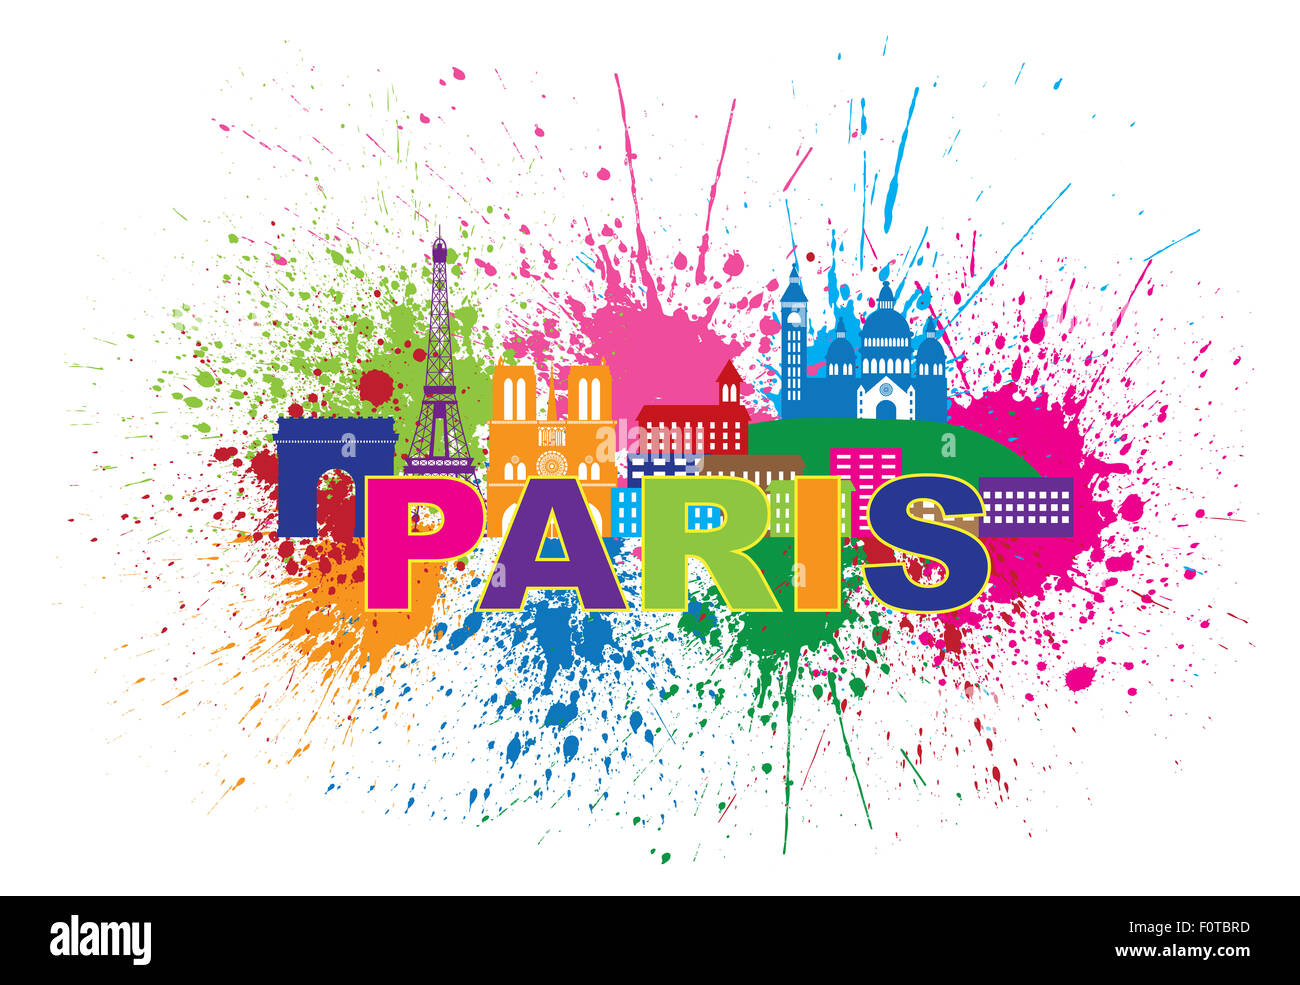 Paris France City Skyline Outline Silhouette Paint Splatter Abstract Colorful Text Isolated on White Background - Stock Image